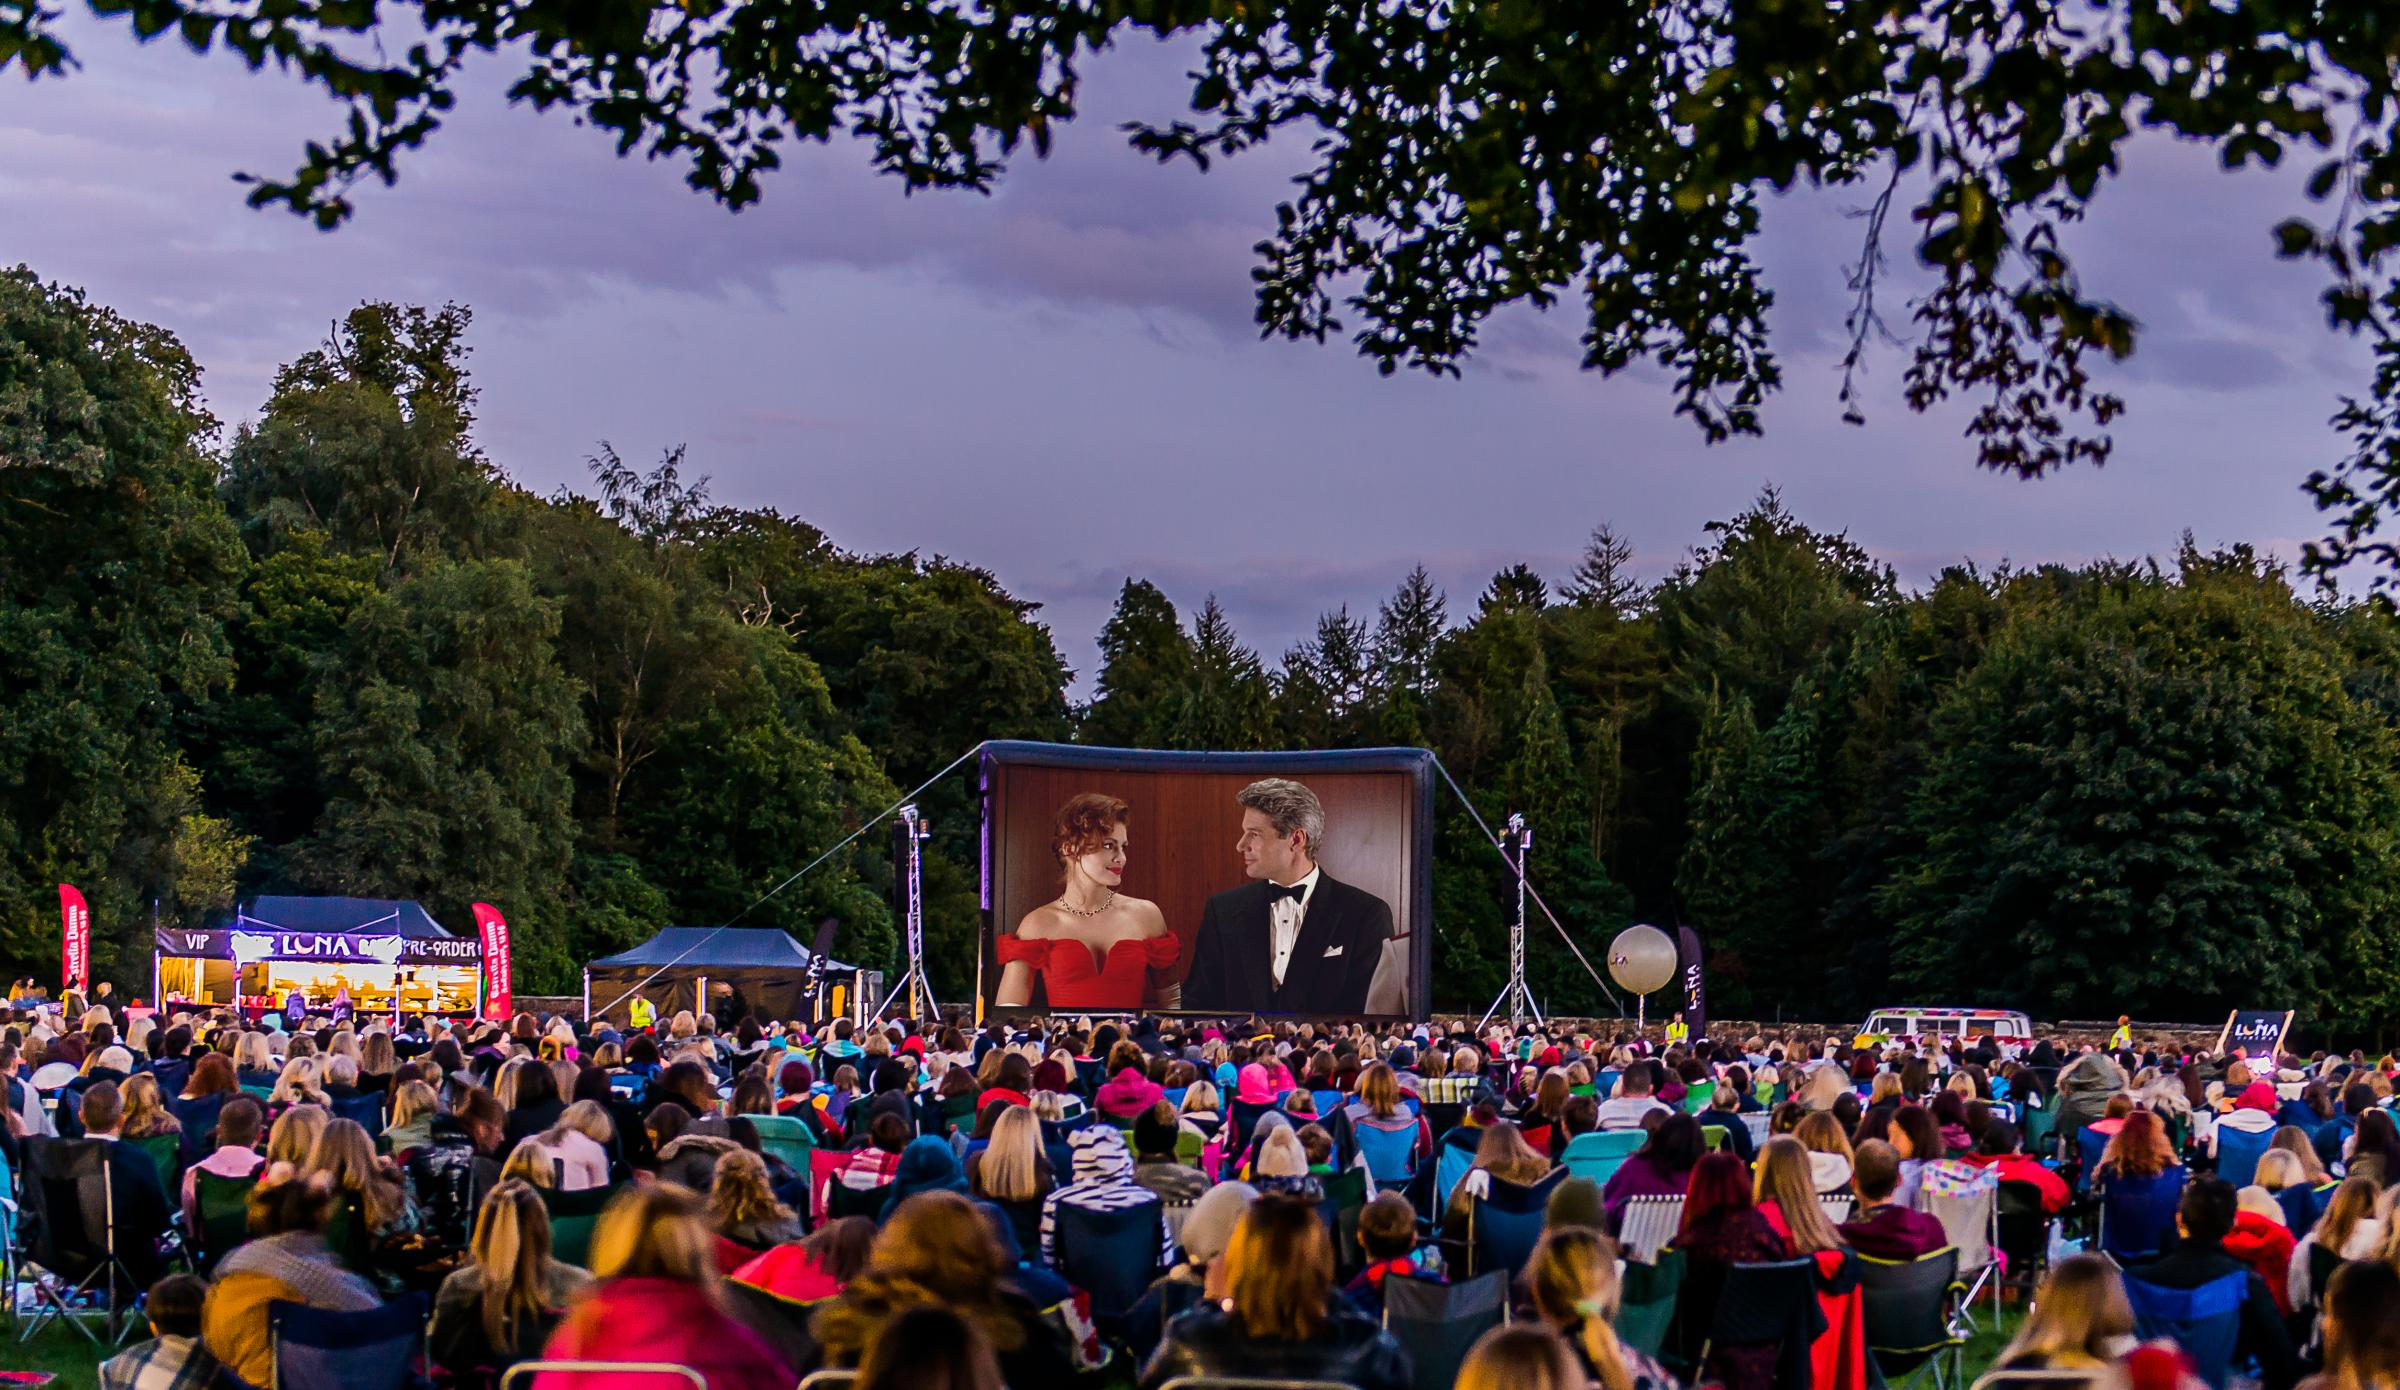 The outdoor screenings take place at Tatton Park